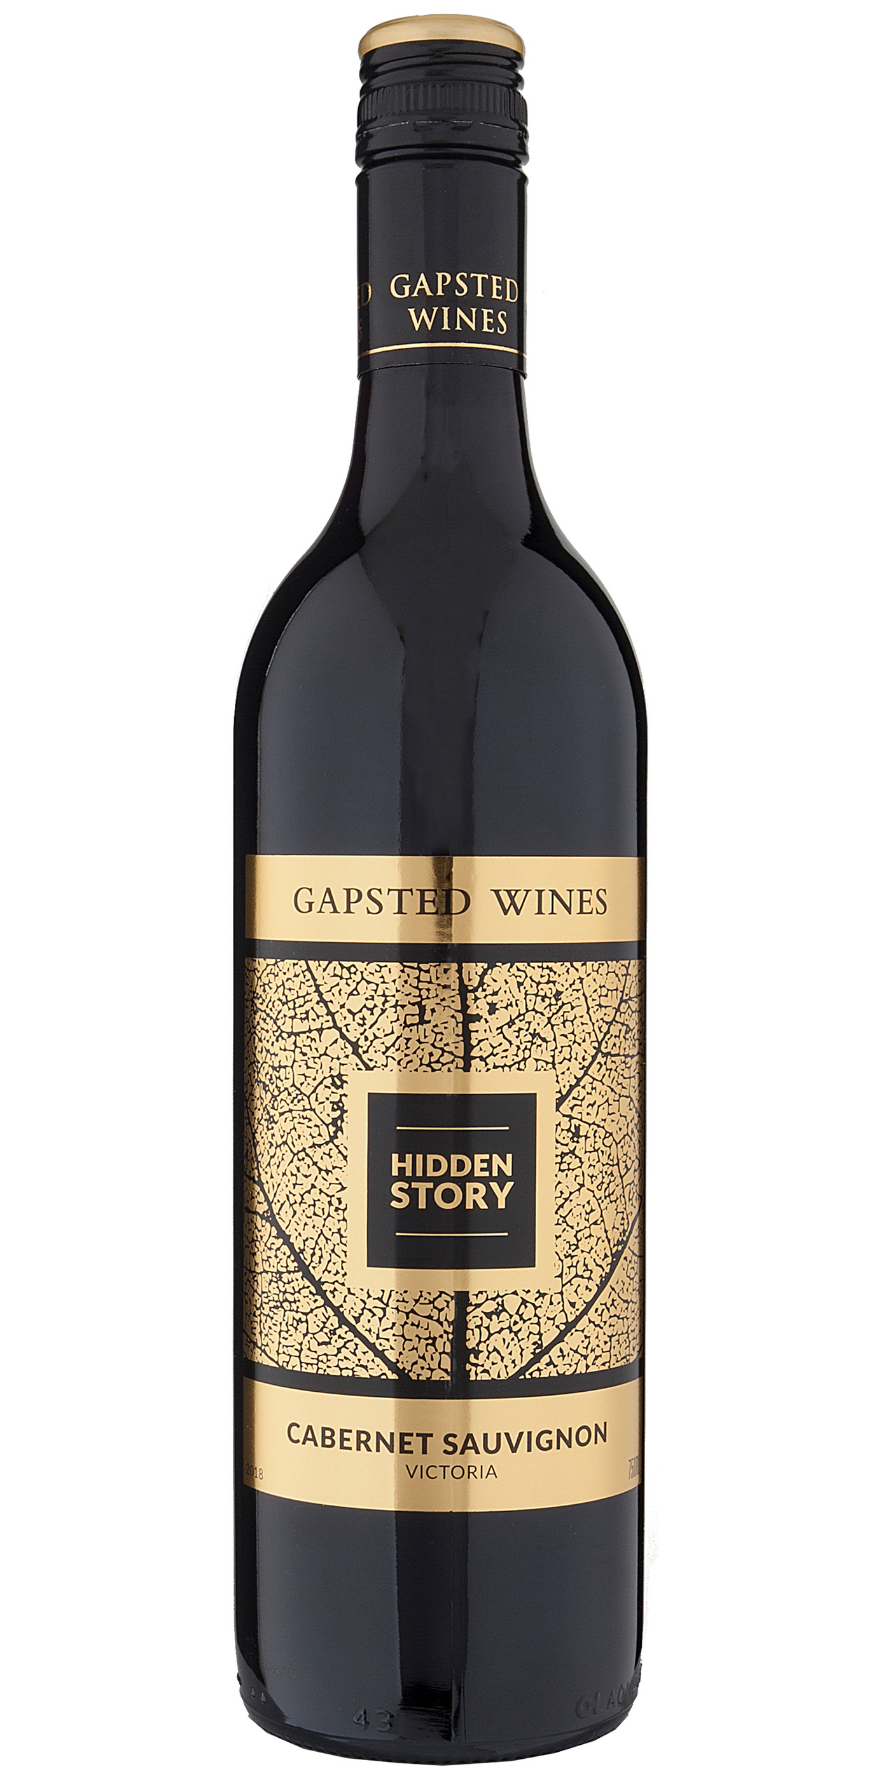 Hidden Story 2019 Cabernet Sauvignon - Gapsted Wines